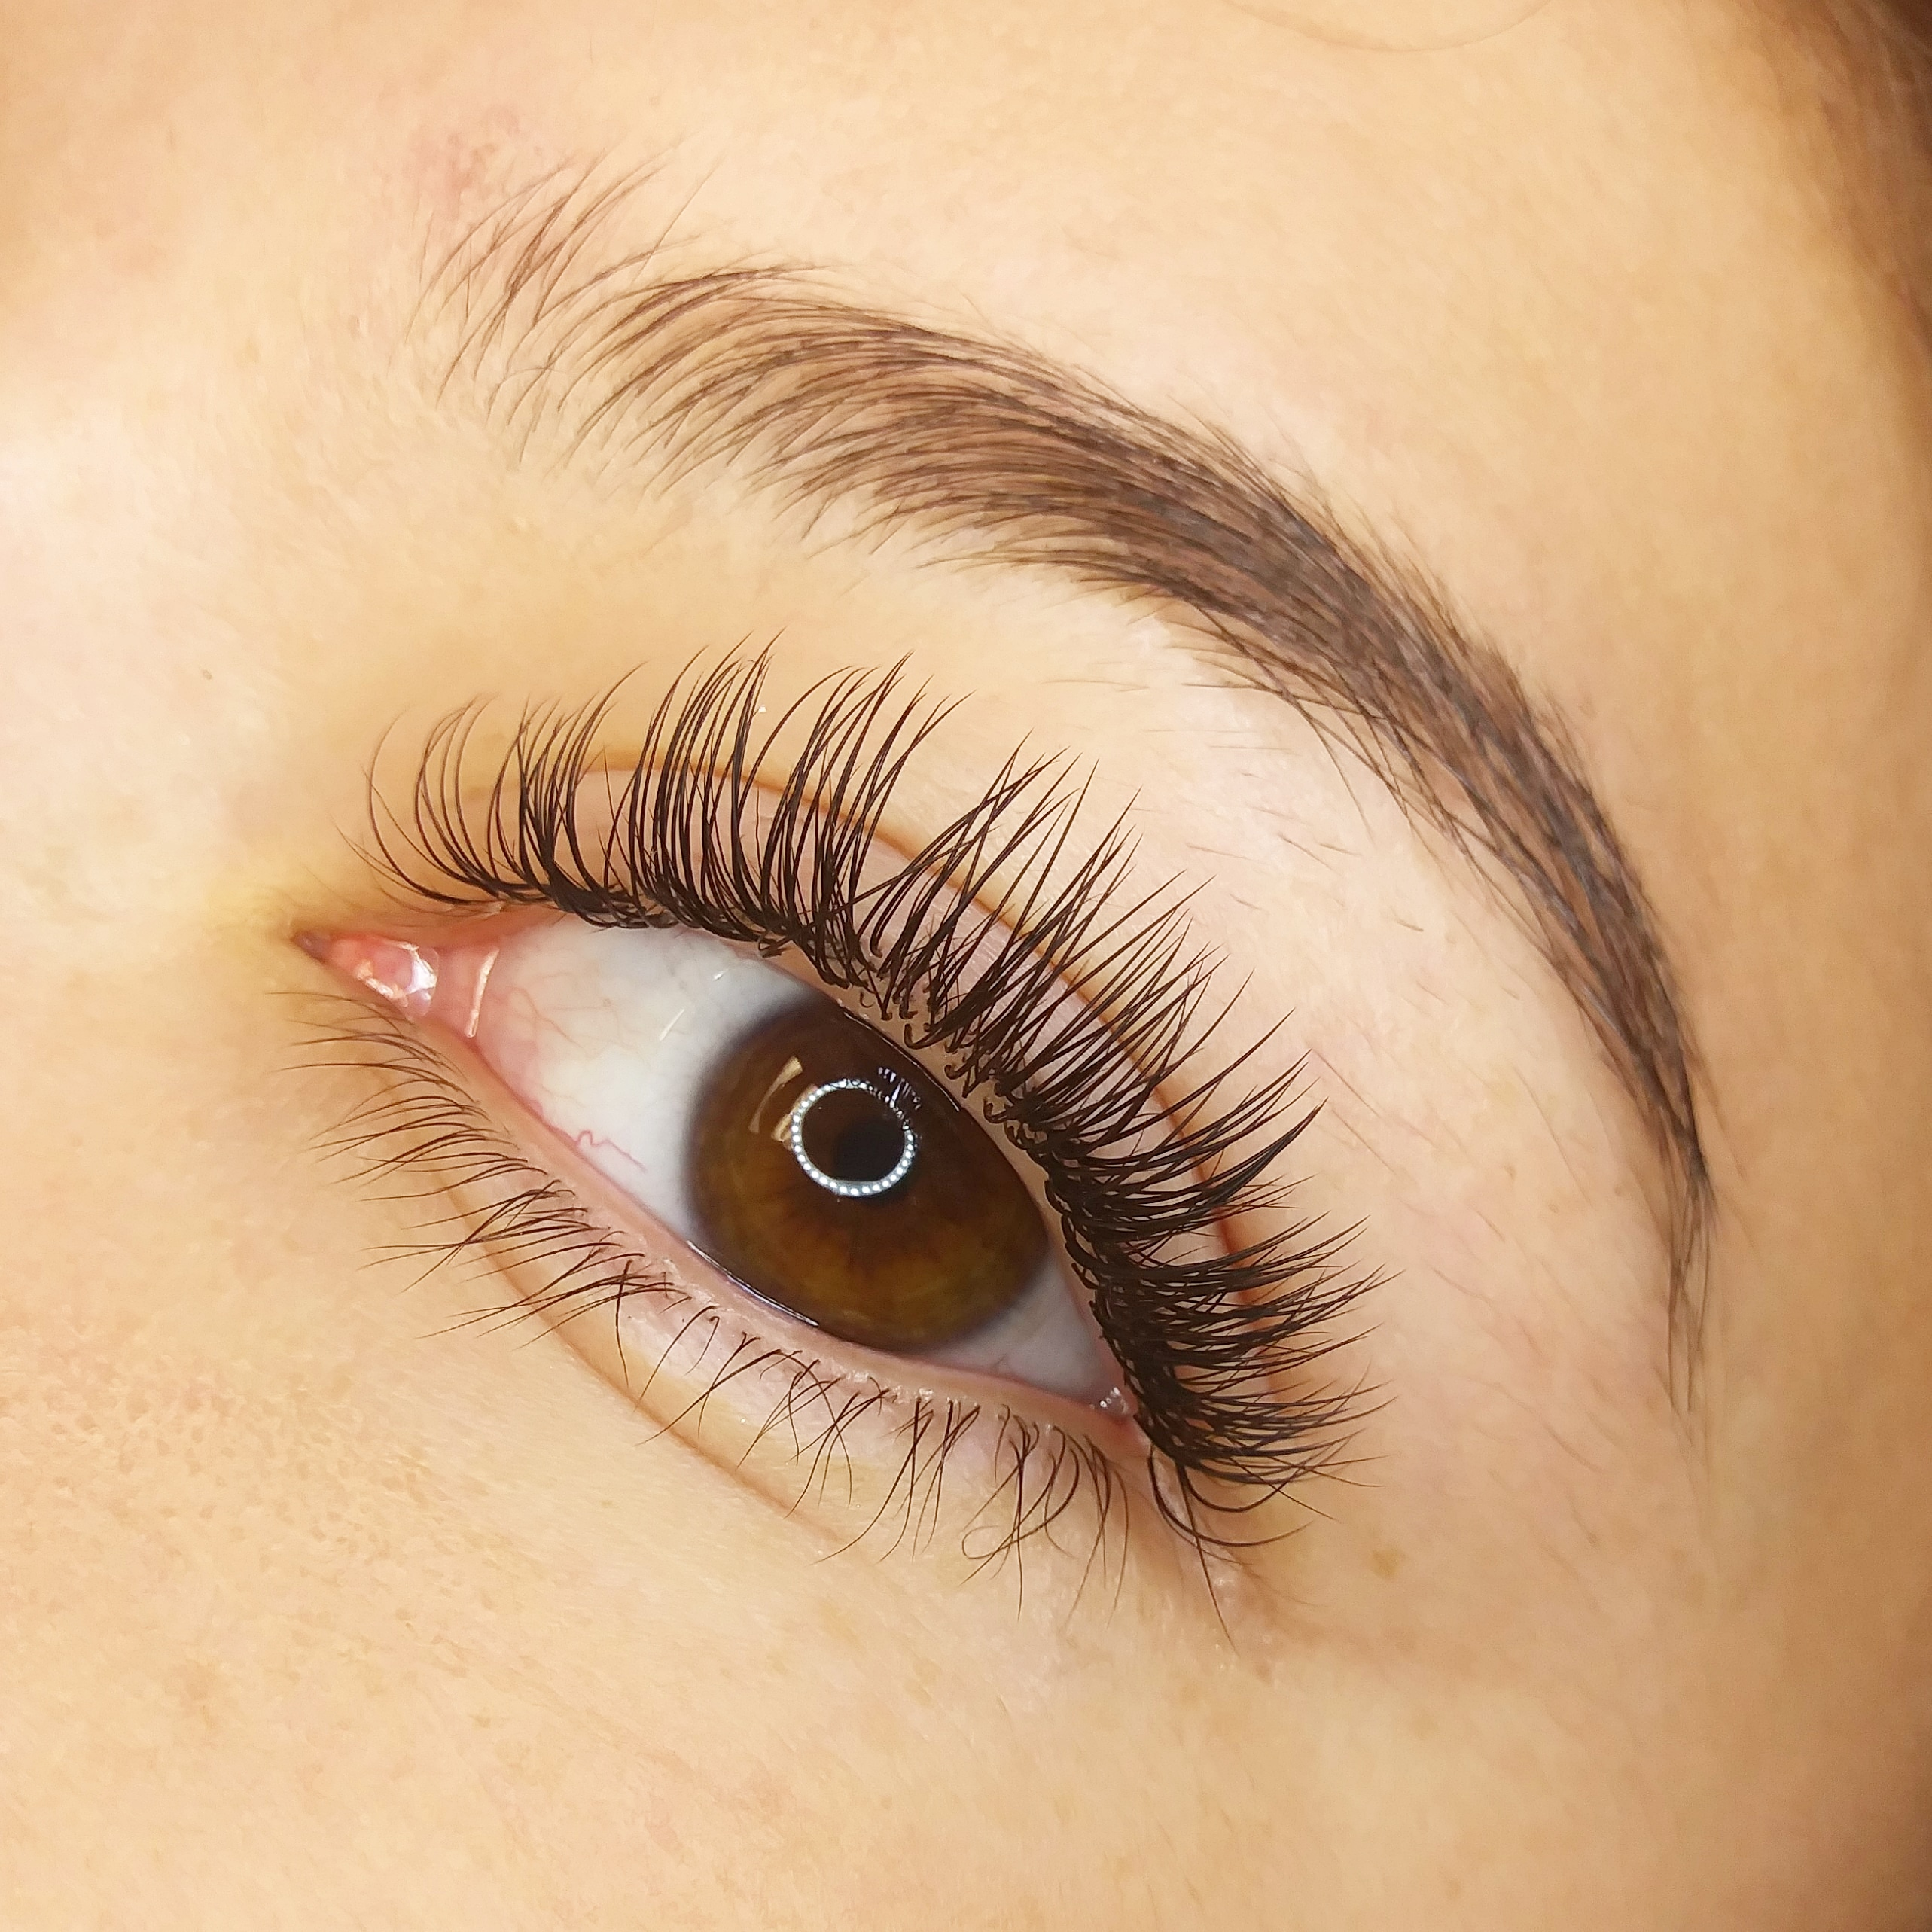 141de947a7f Many artists don't know this, but Ellipse or flat lashes are not meant to  be used for full sets. Full sets of flat lashes often have a plasticky  looking ...